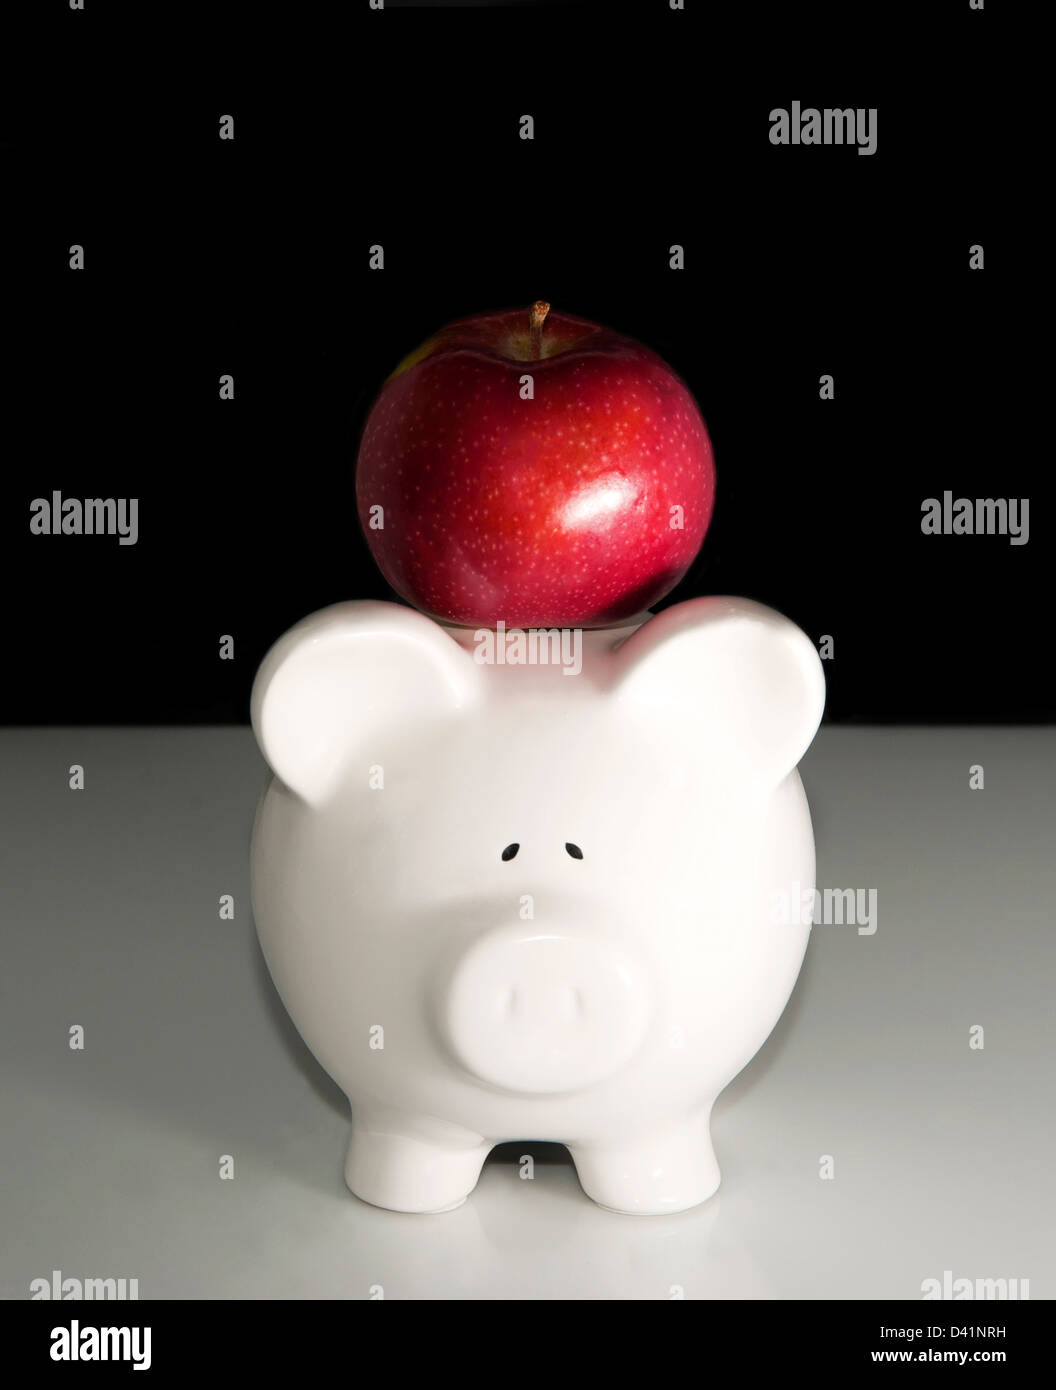 Piggy bank with apple on top of its head - Stock Image